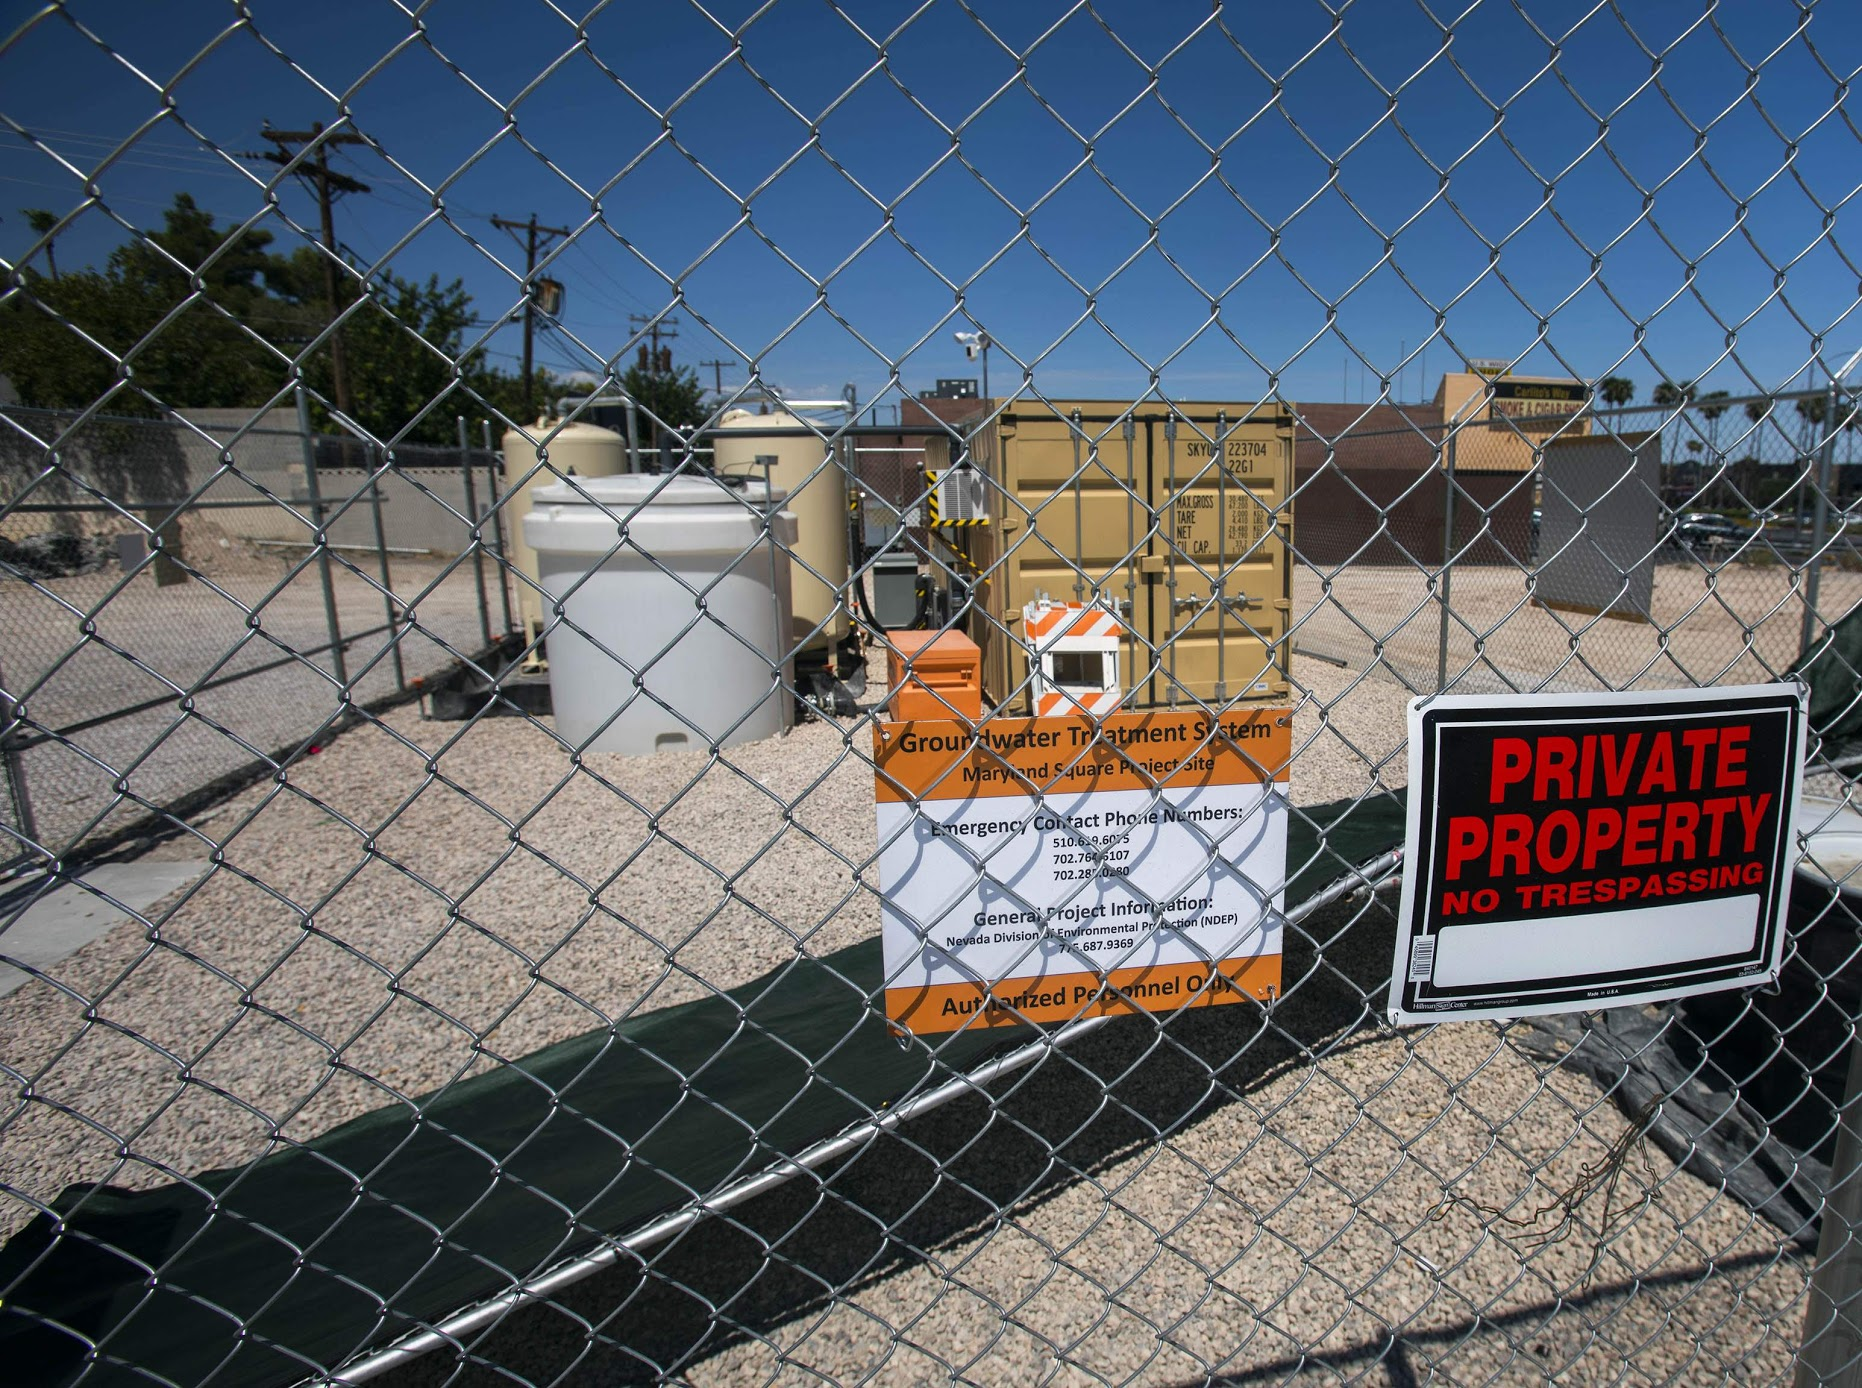 A private property sign on a chain link fence in front of items at the former site of a dry cleaner in Maryland Square